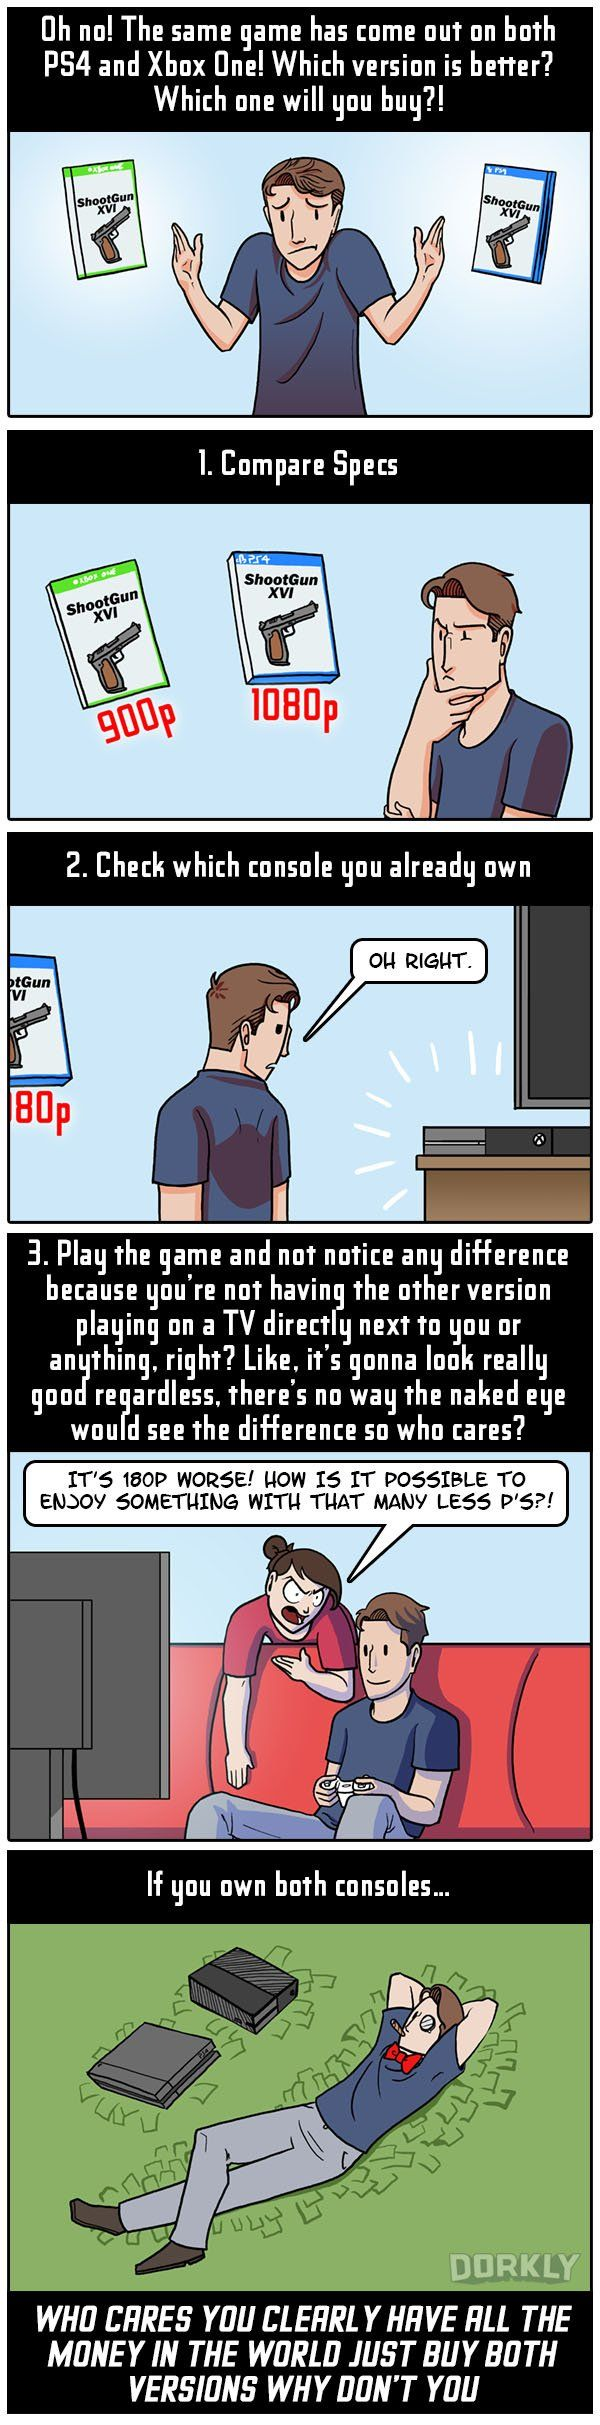 """How to Decide Which Version of a Game to Buy"" #dorkly #geek #videogames"